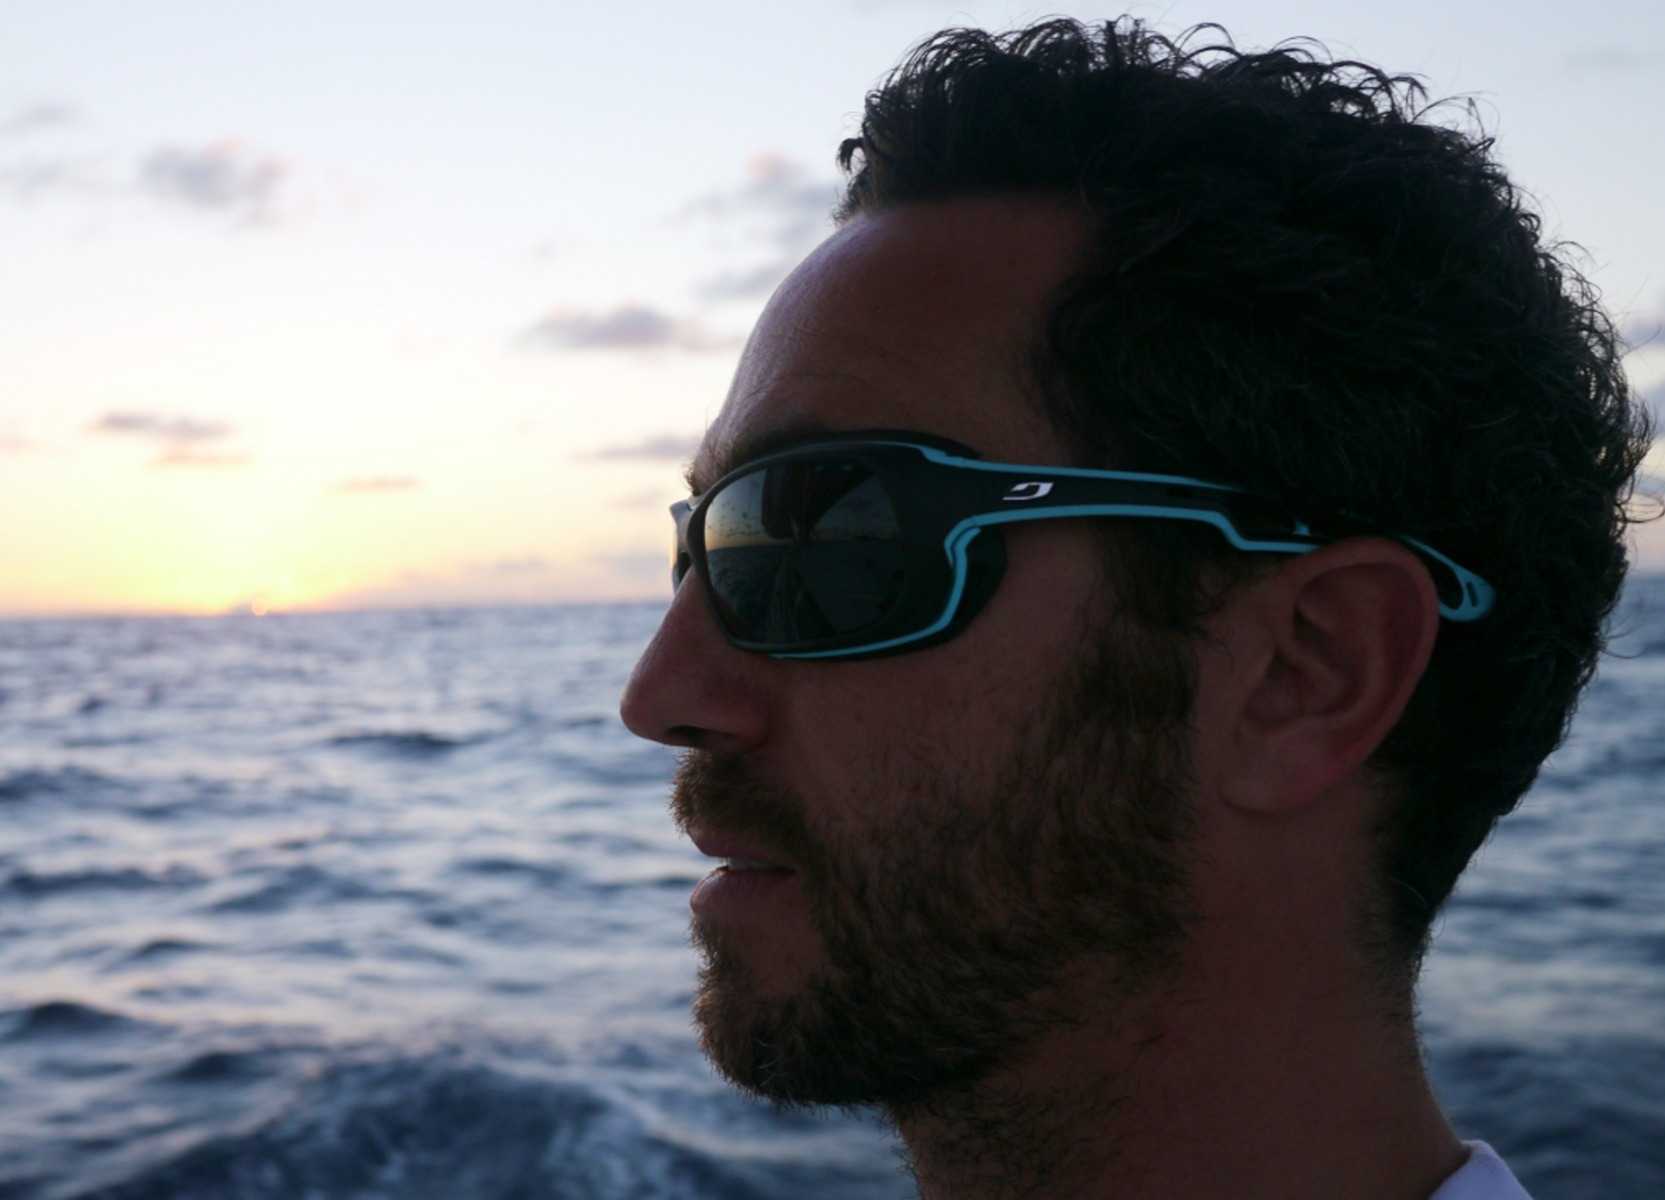 Tanguy de Lamotte - ATLANTIC SEA / SOUTH EQUATOR - 26/11/2012